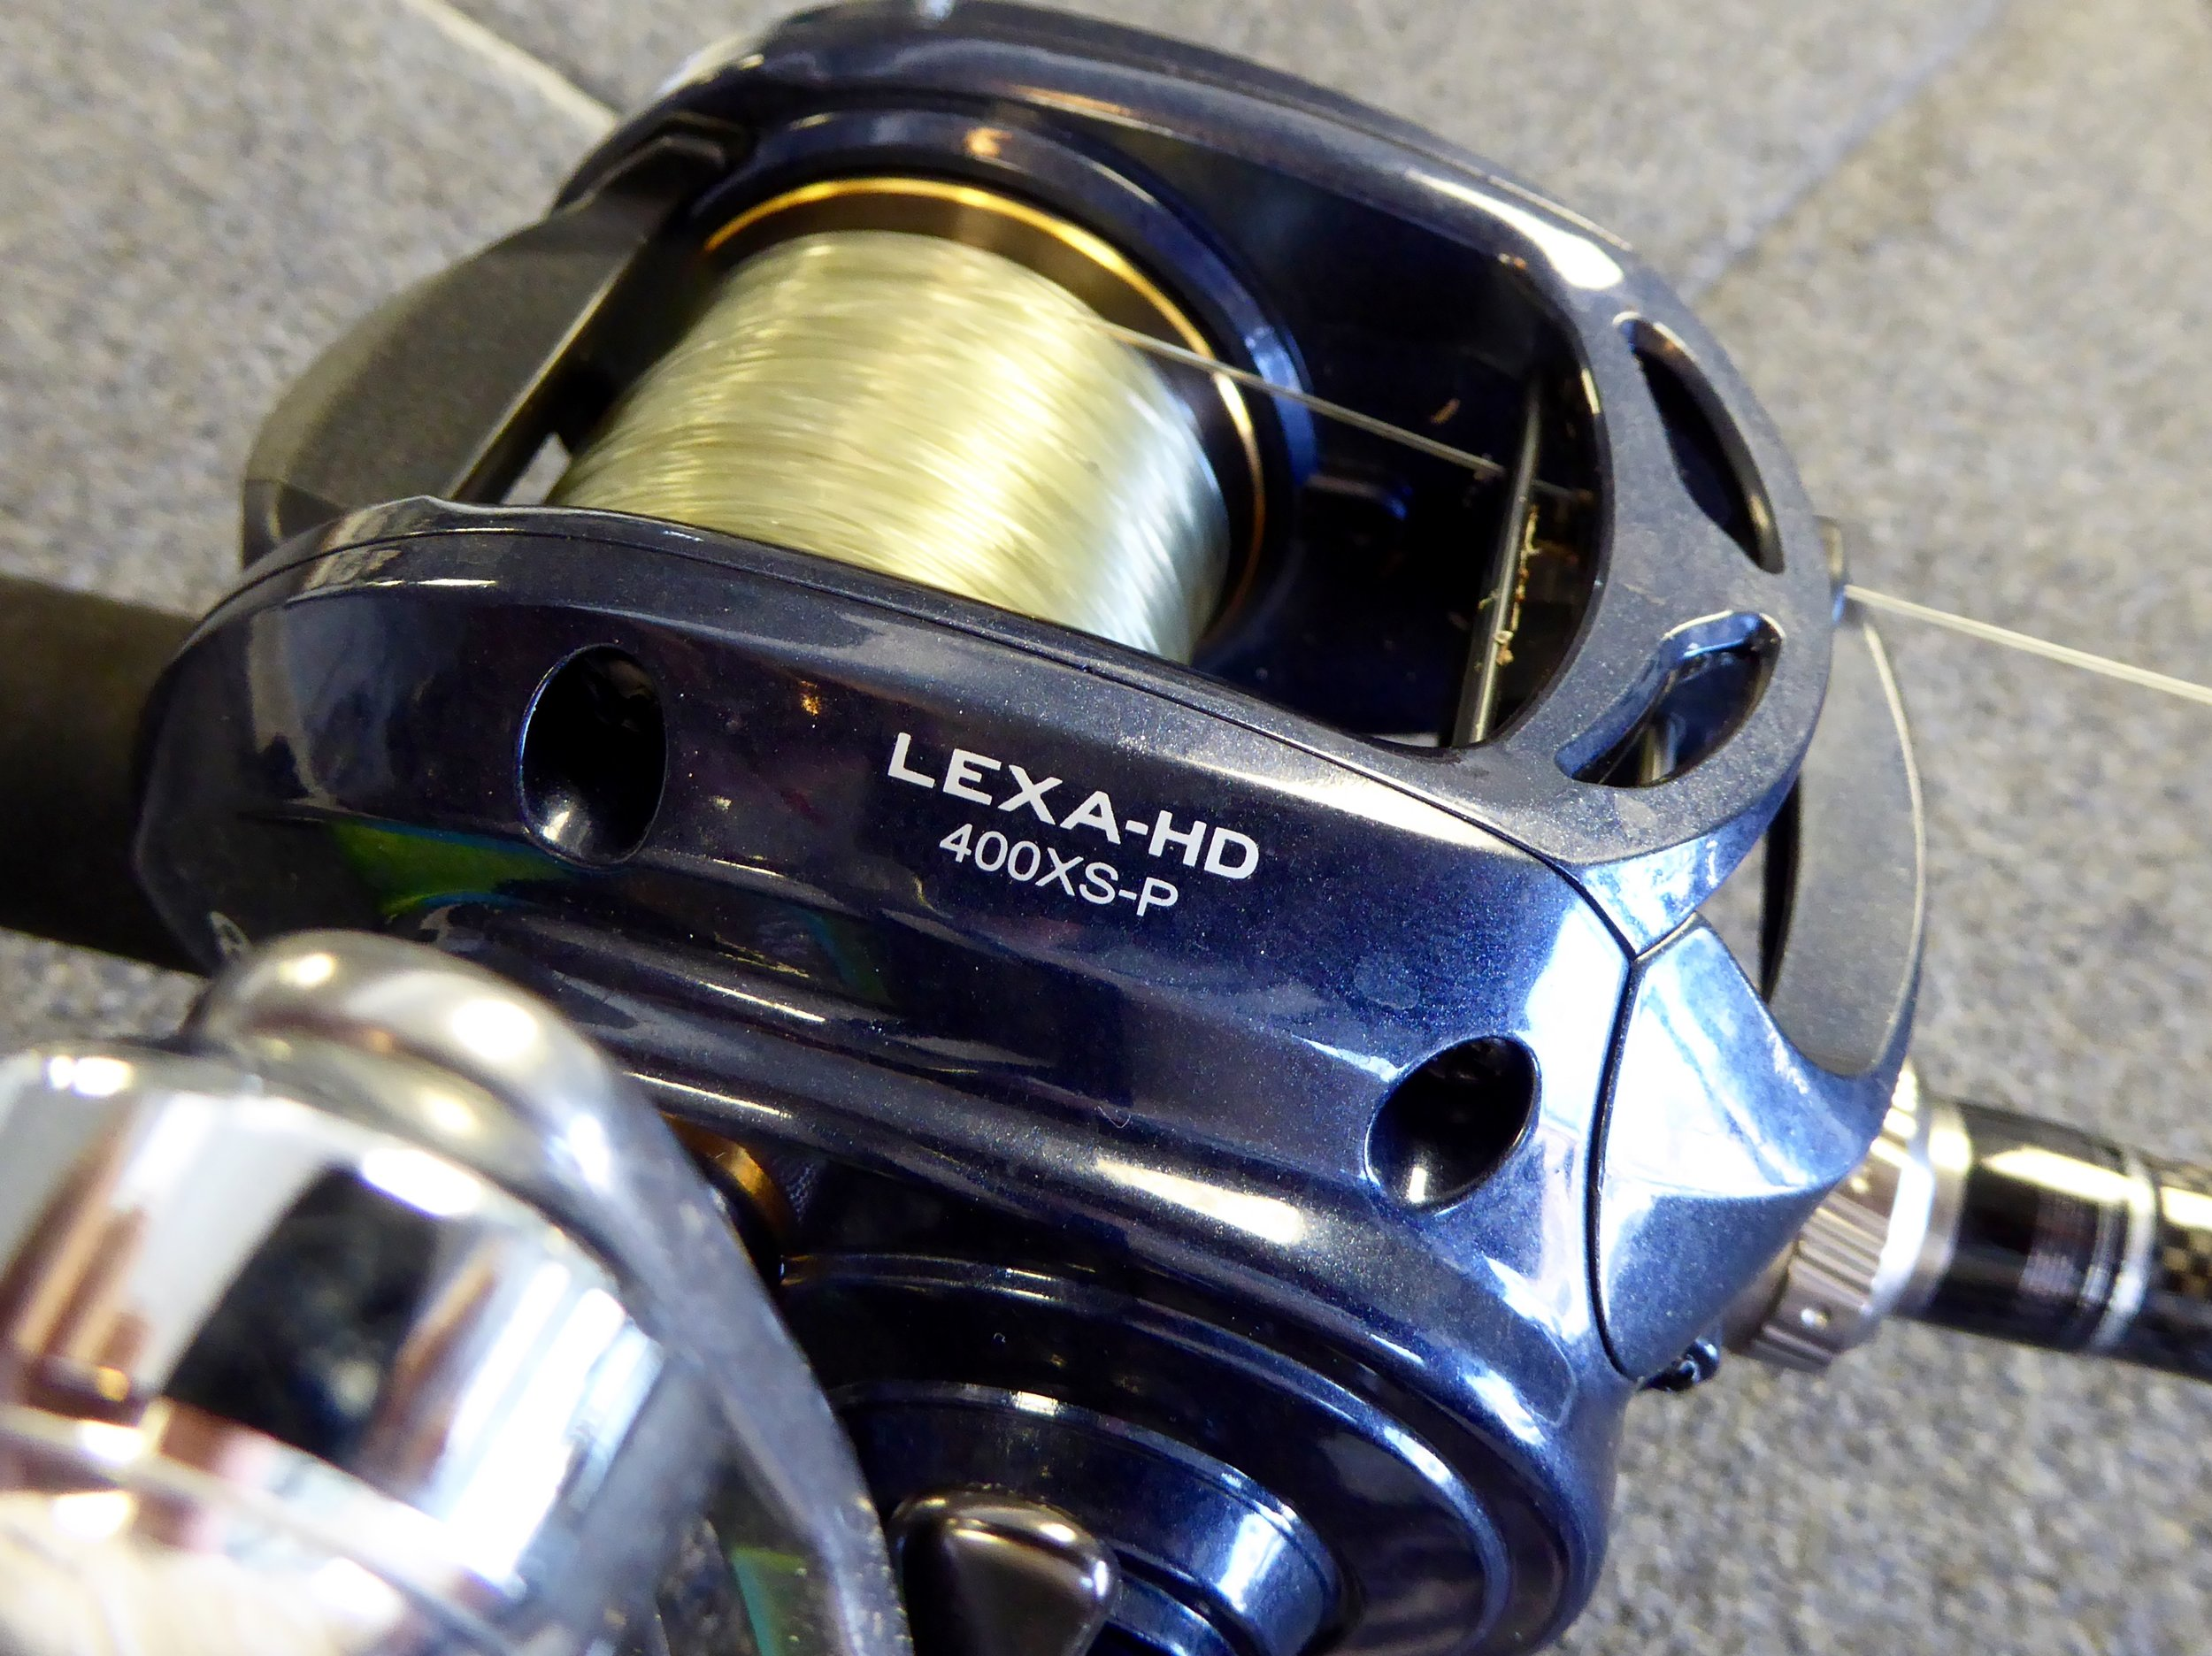 Daiwa LEXA-HD 400 Gear Ratios from 5.1:1 to 8.1:1. Pick Your Poison.